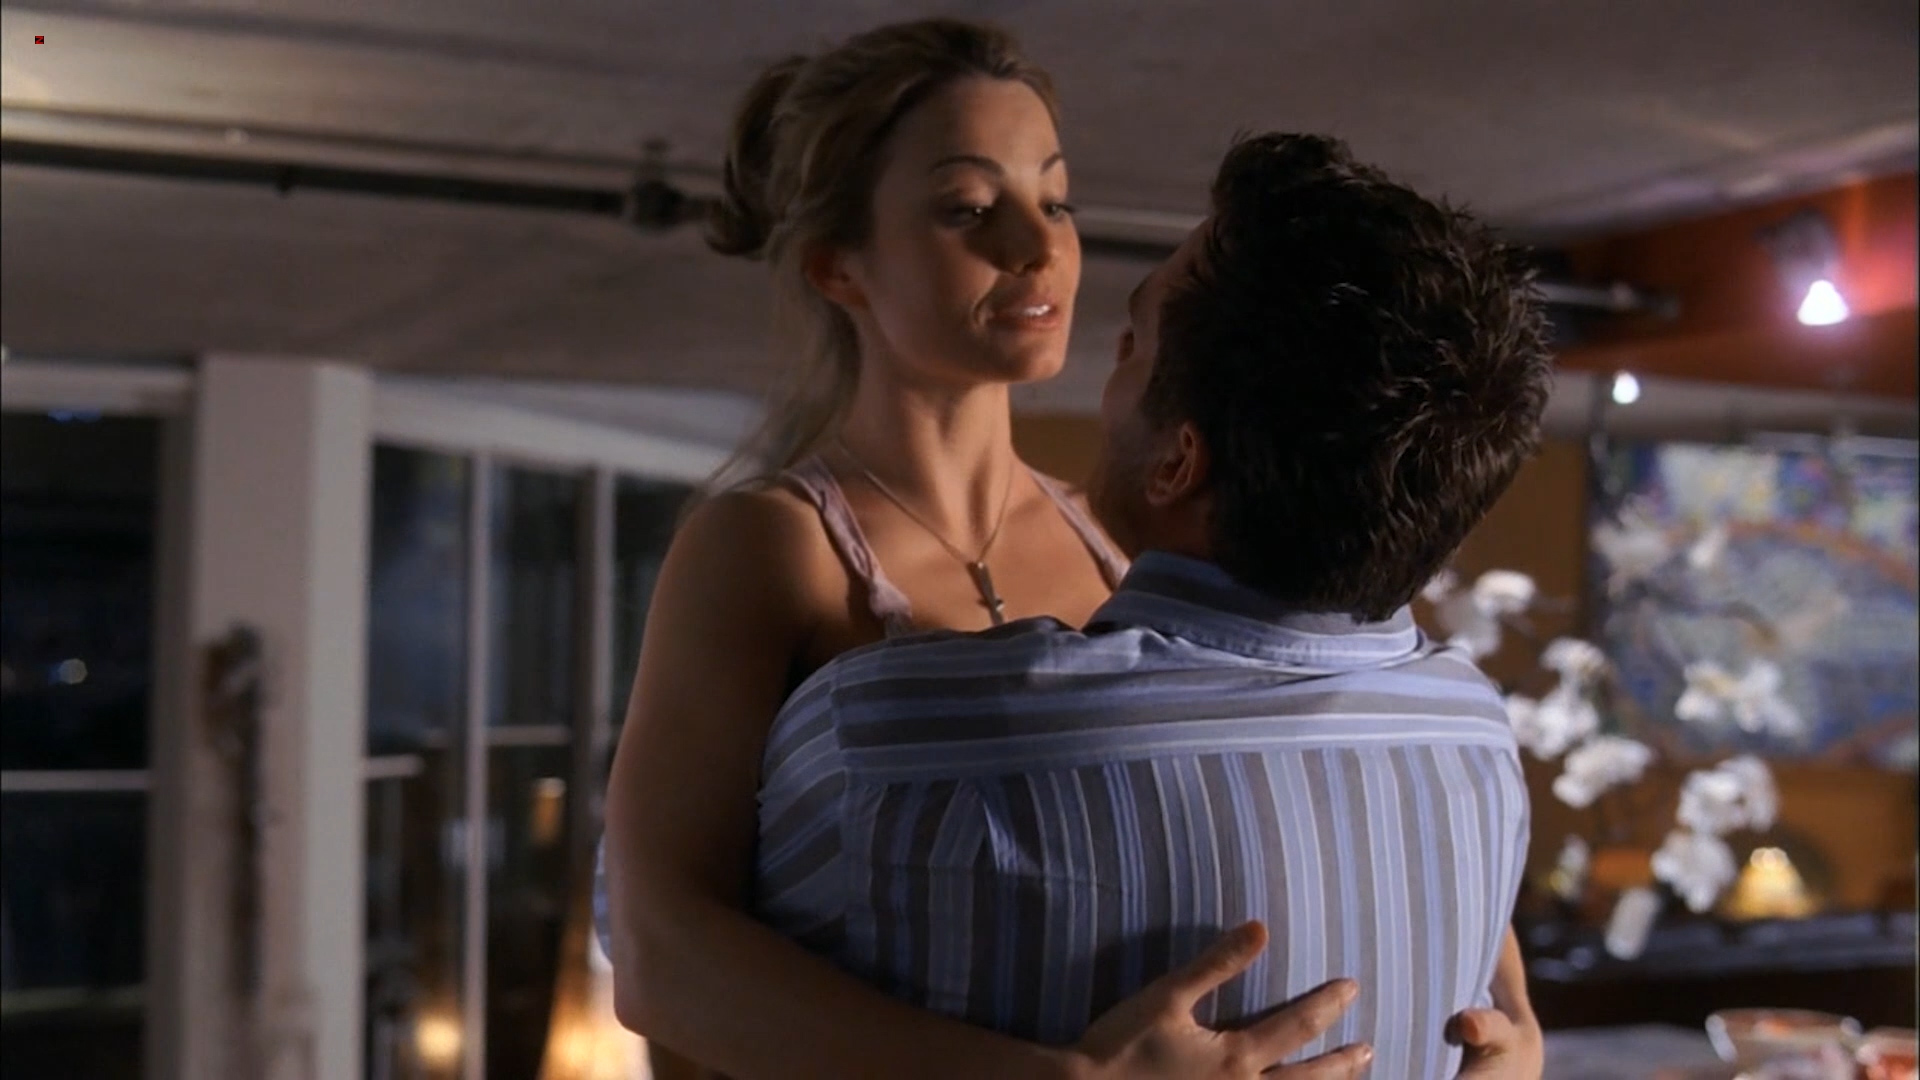 erica durance butterfly effect sex